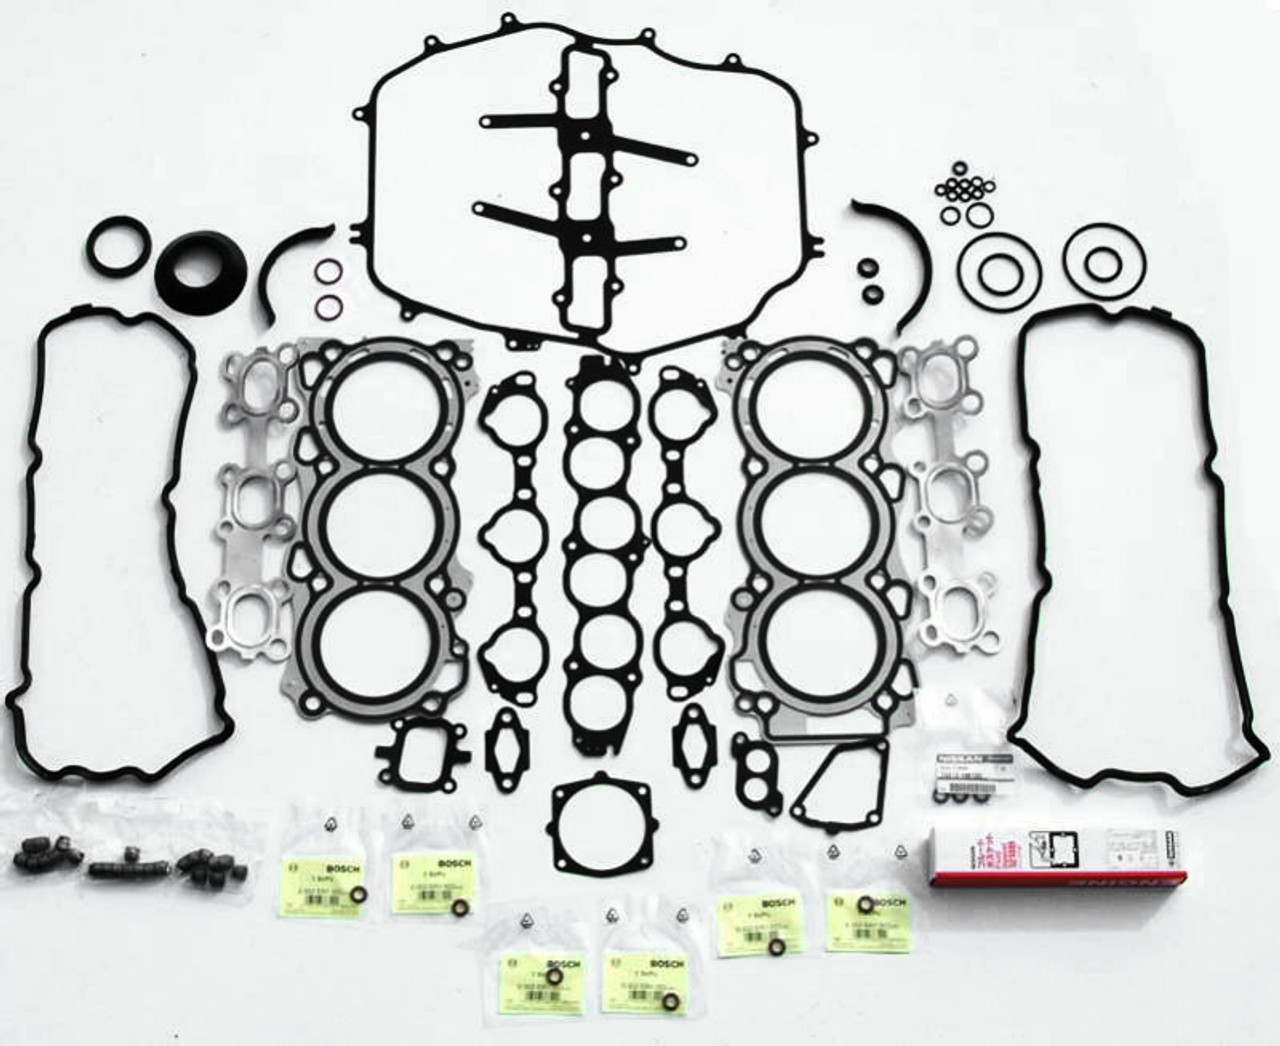 Oem Full Engine Gasket Set For Nissan Vq35de Z33 02 04